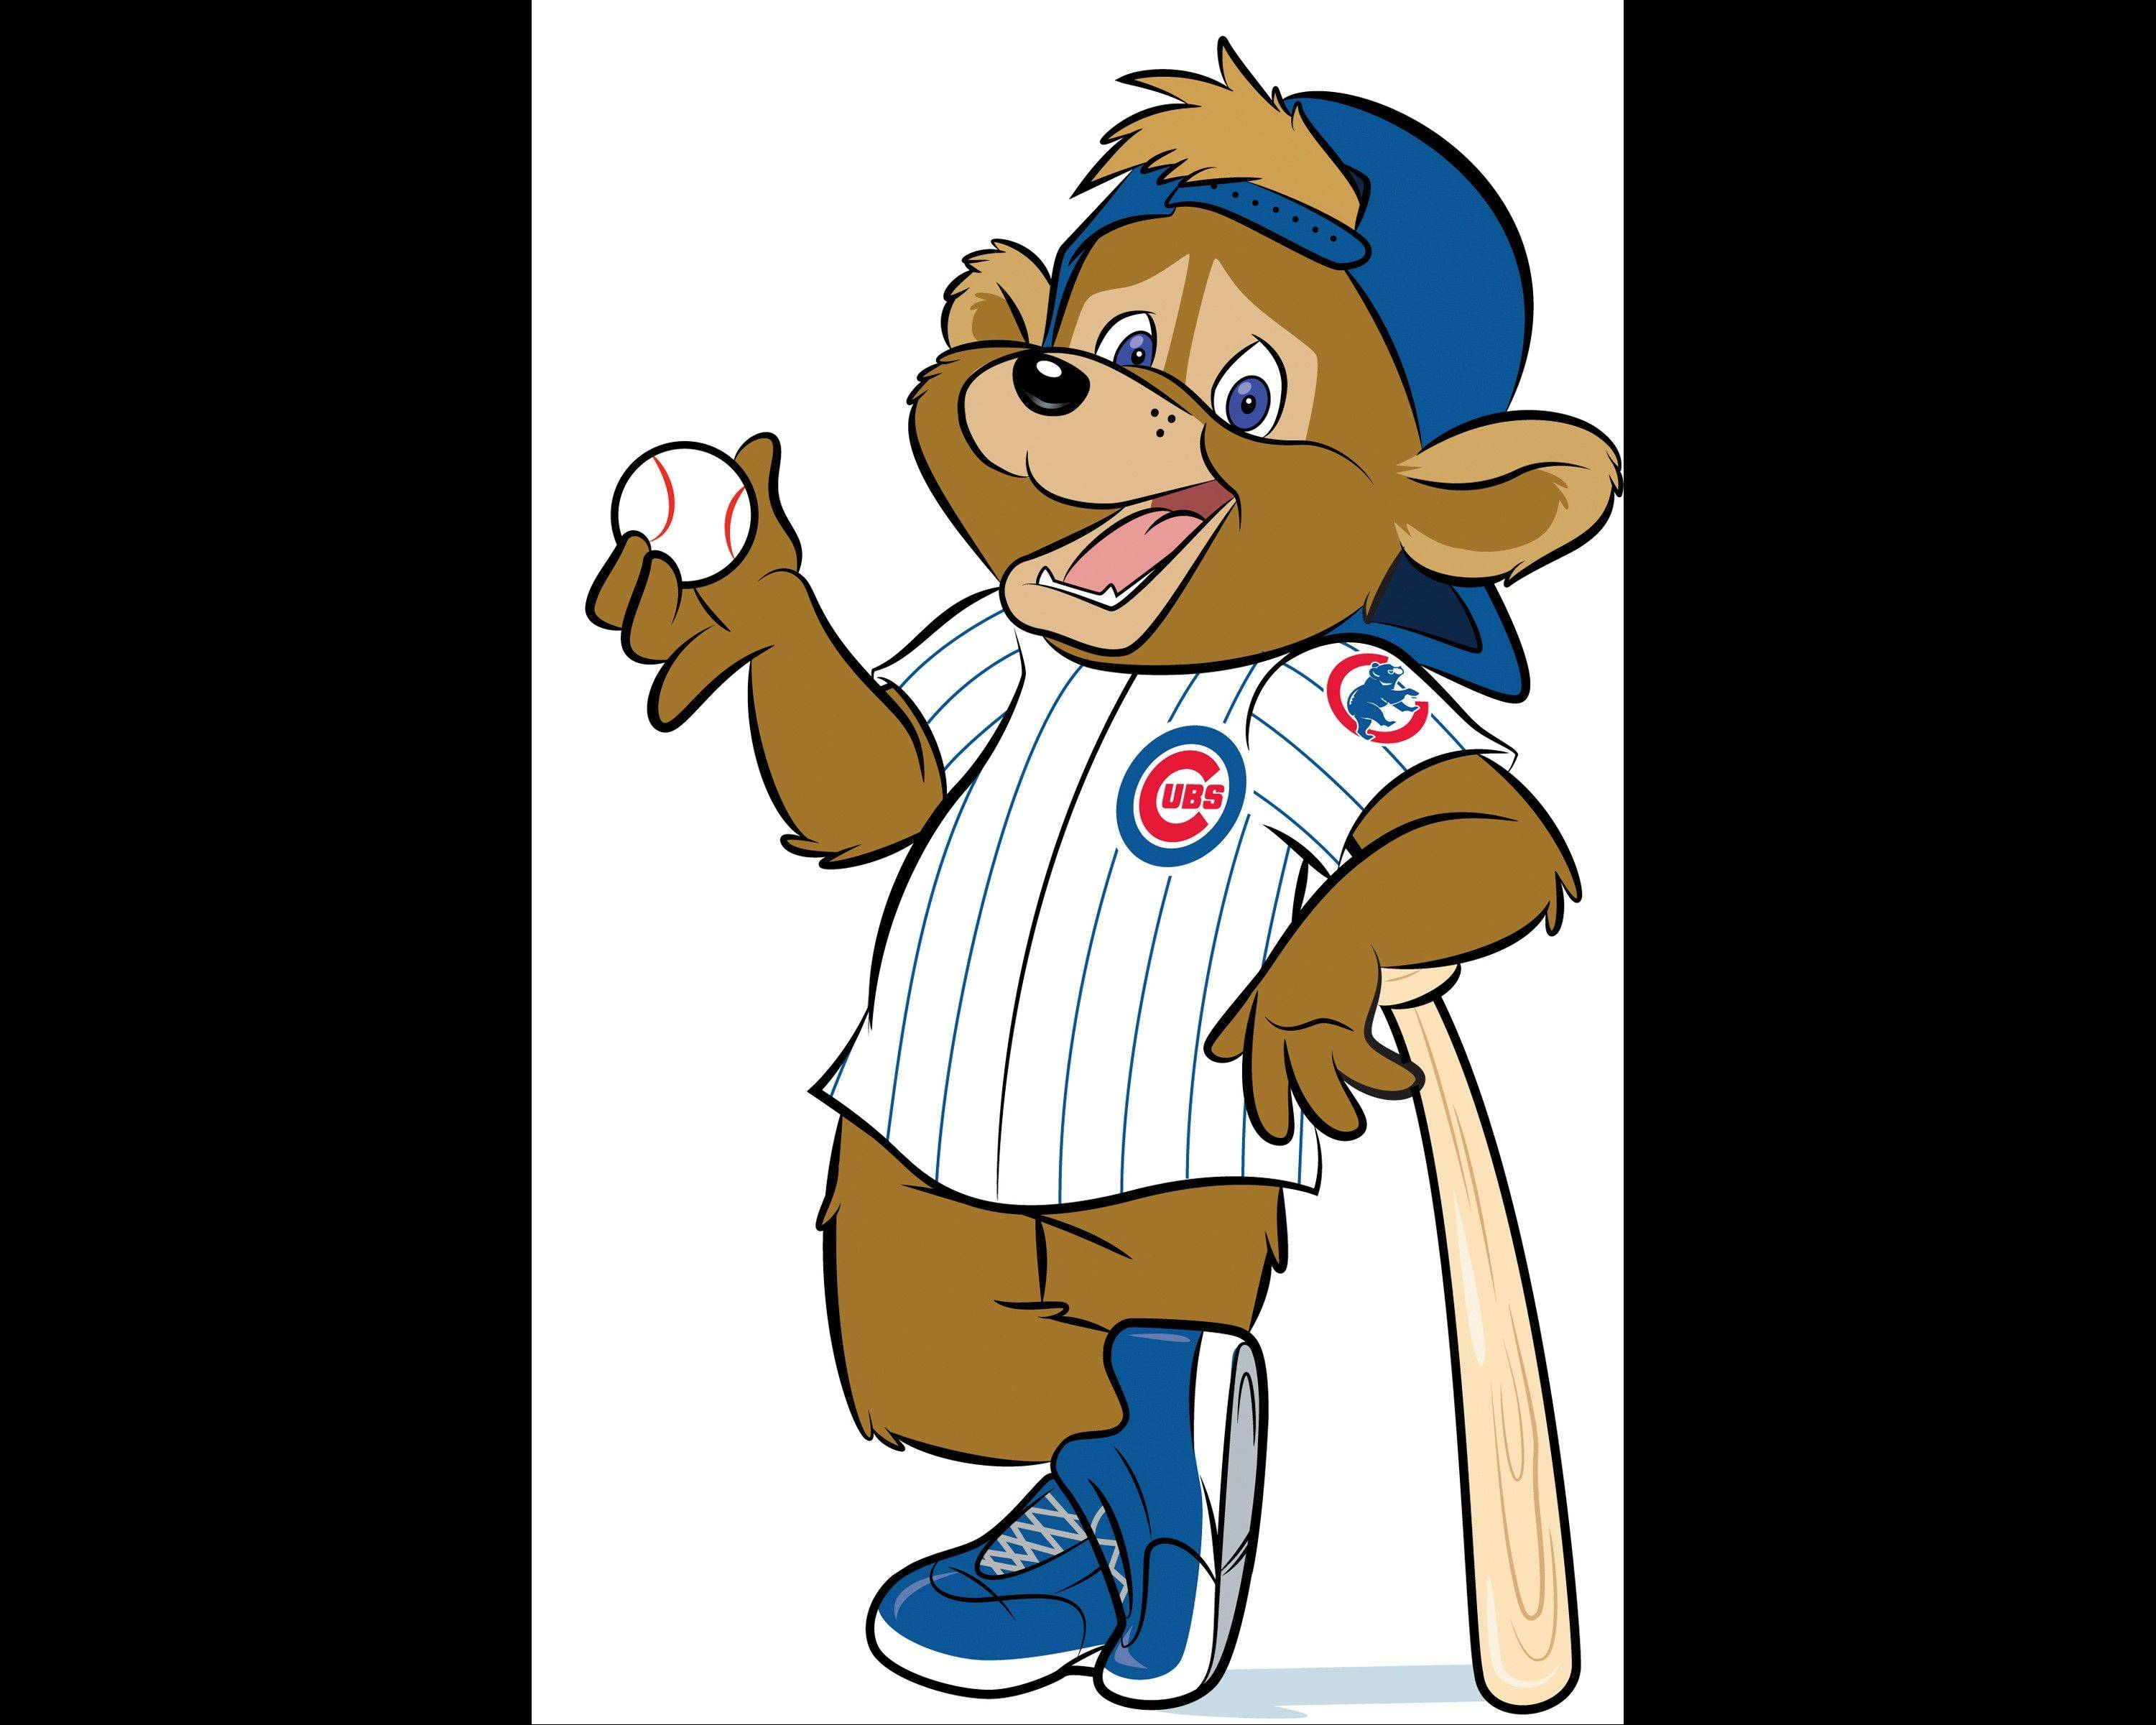 This artist's rendering provided Monday, Jan. 13, 2014, by the Chicago Cubs shows Clark, a new mascot being introduced Monday for the first time in team history. The team will officially introduce Clark during a visit with children at Advocate Illinois Masonic Medical Center's Pediatric Developmental Center in Chicago. The team plans on having Clark greet fans at Wrigley Field before and during games.